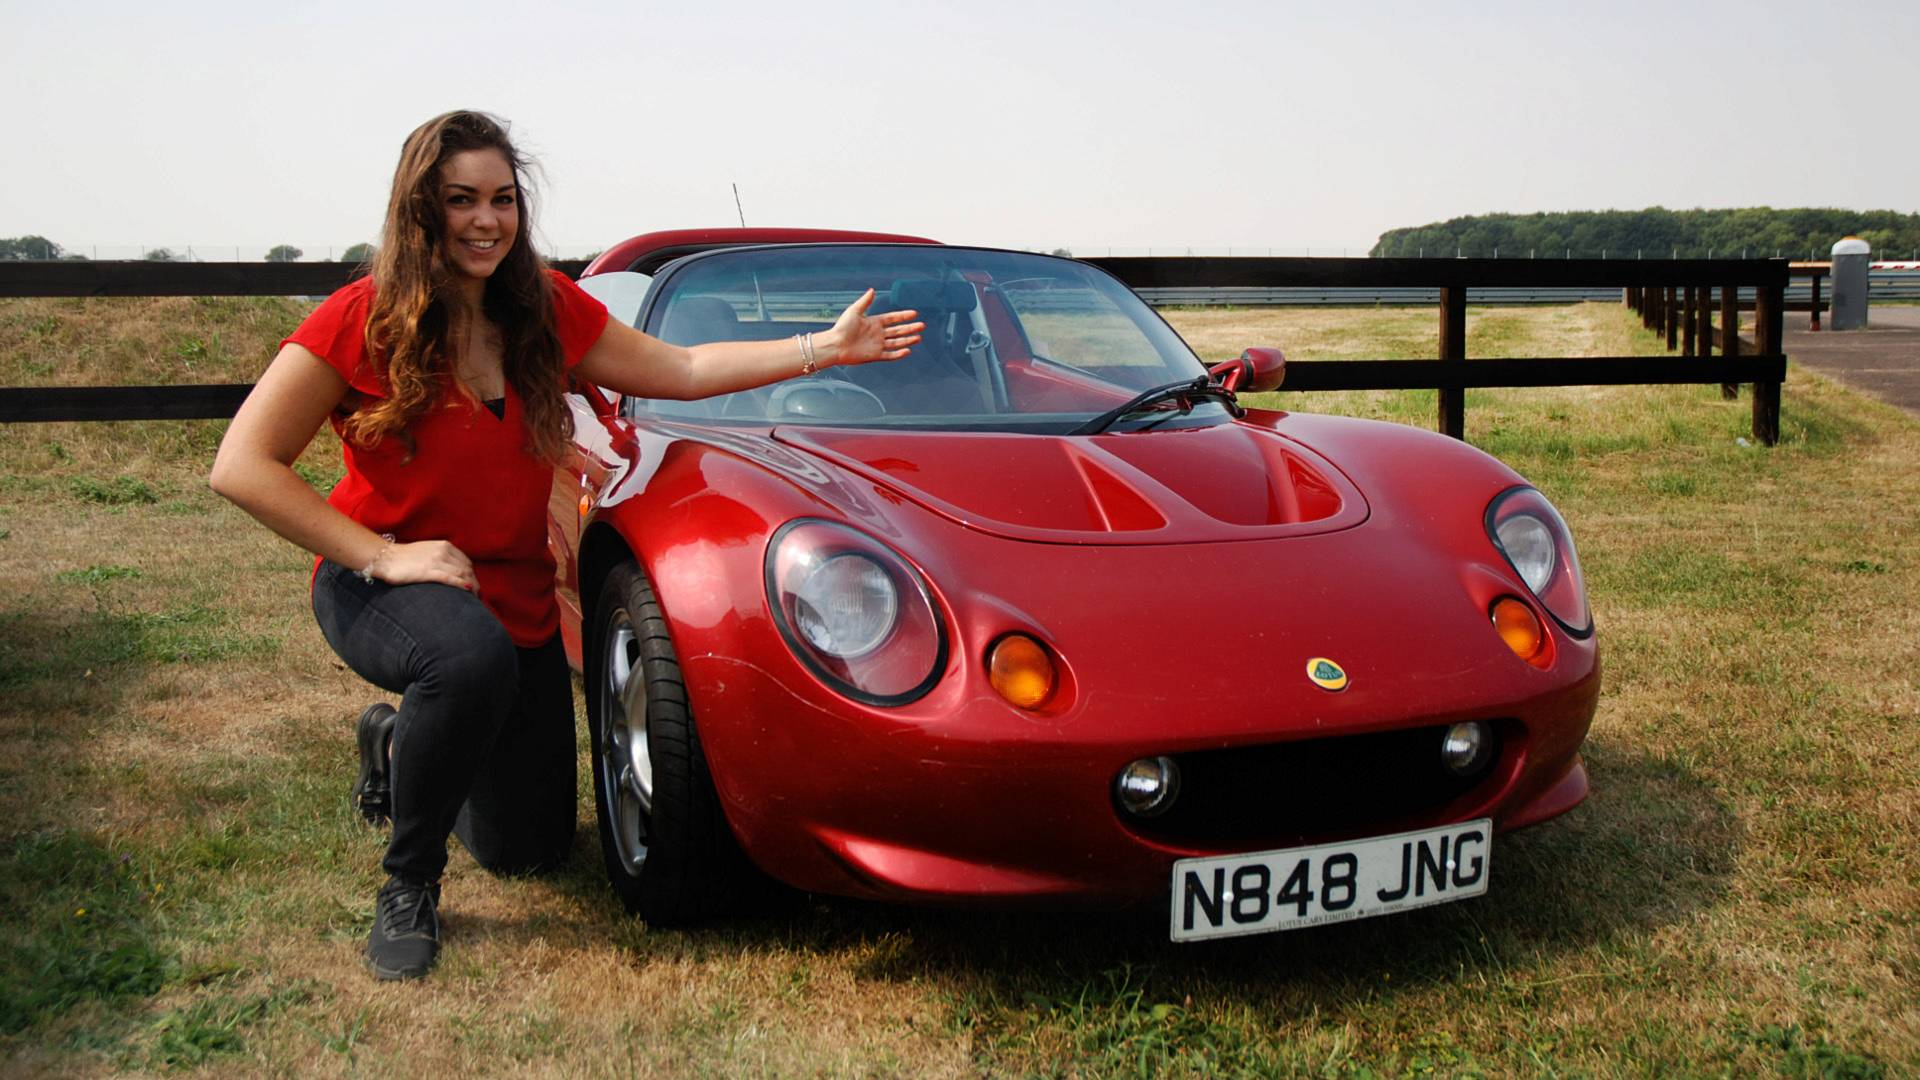 Elisa_Artioli_and_the_Lotus_Elise_02